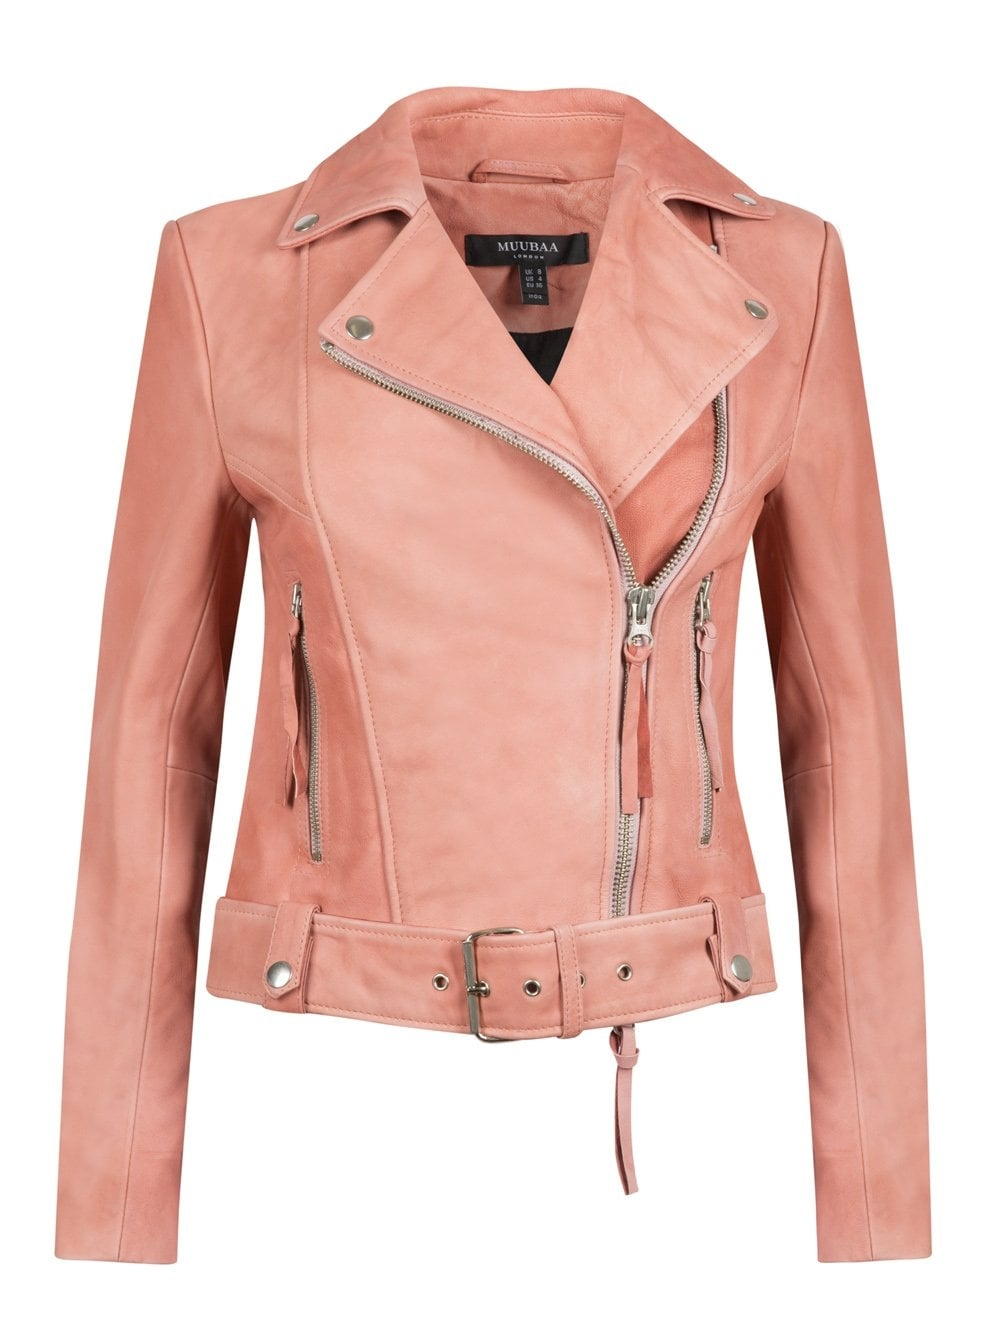 Holmedale Pink Leather Biker Jacket - Sale from Muubaa UK